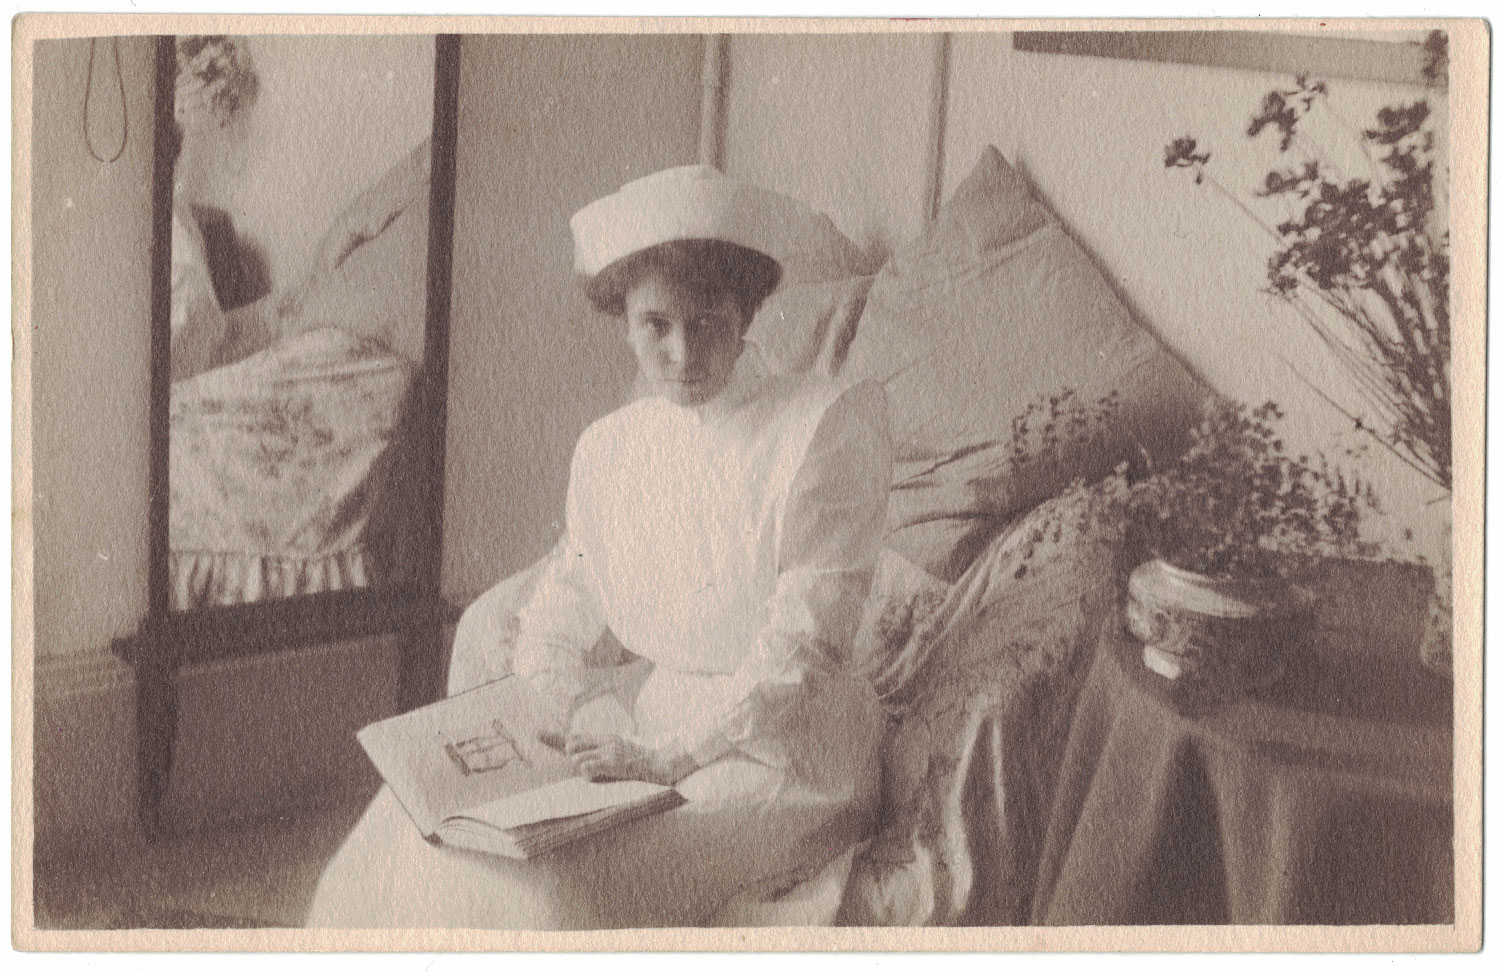 Lillian Burkitt as she trained to be a nurse in Rome, around 1912 - Image Credit Lesley Cain, Jane Wood & Lauren Hall ( Great, Great / Great Nieces )